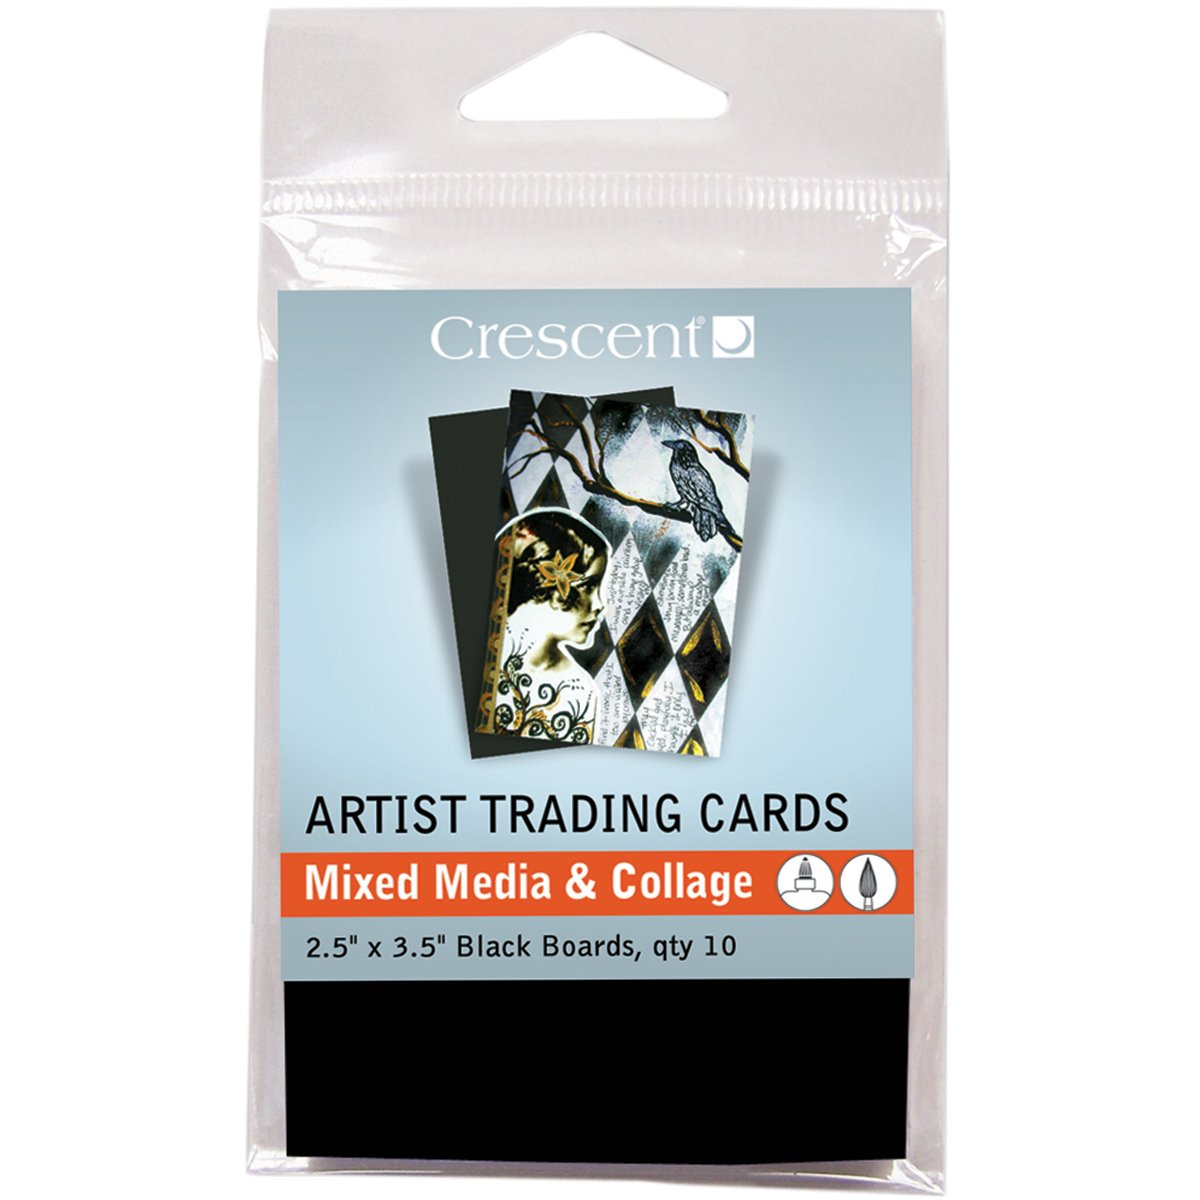 Crescent Cardboard Artist Mixed Media & Collage Trading Cards (10 Pack), 2.5' by 3.5', Black